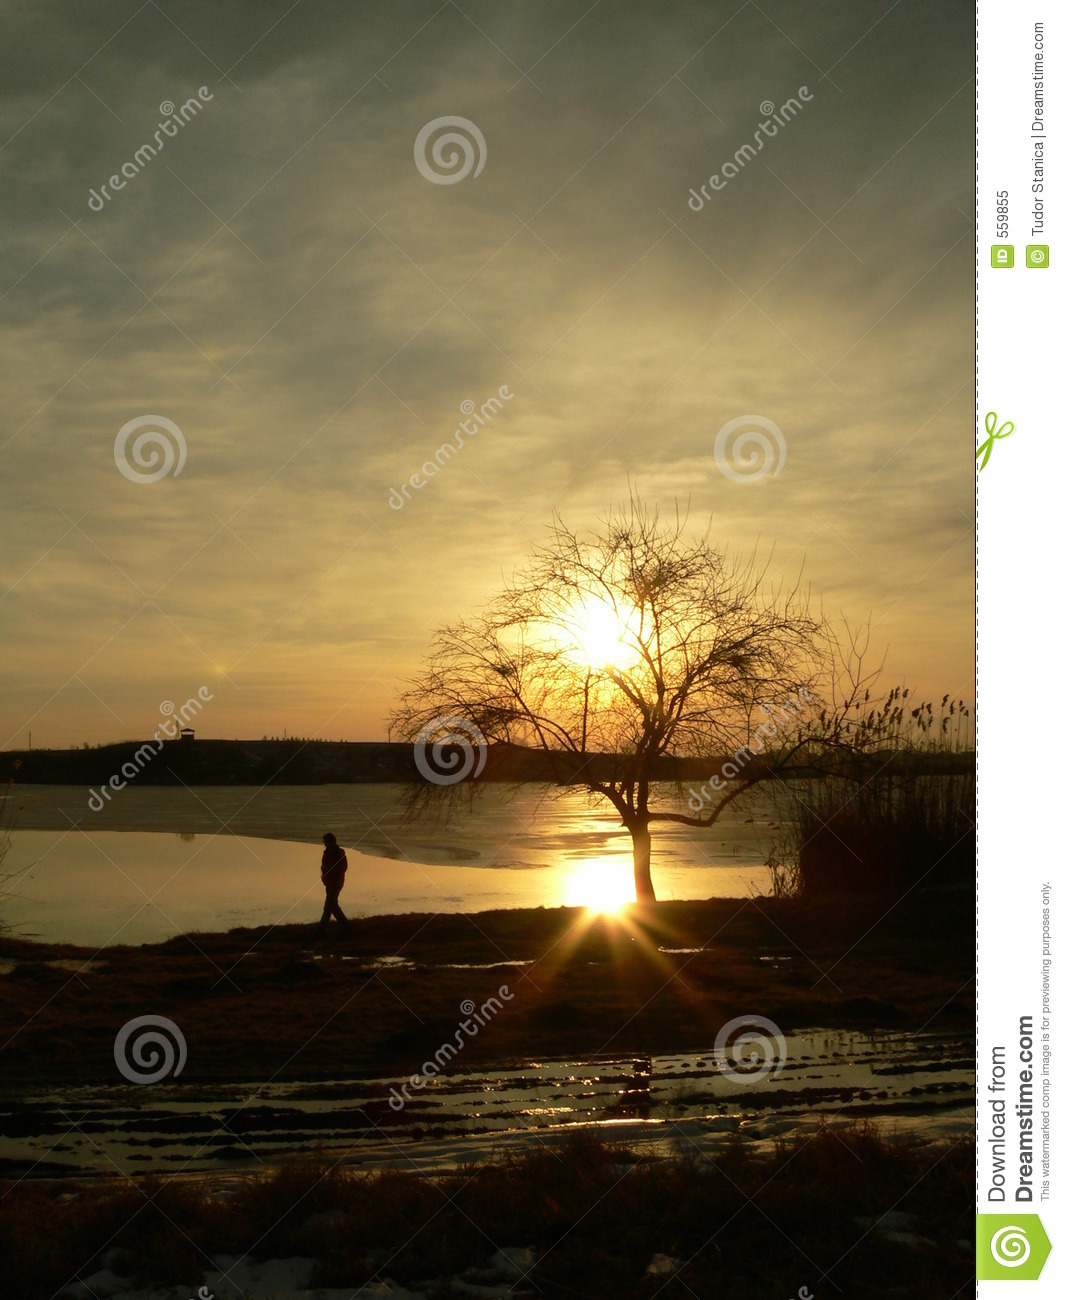 Download Sunset on a lake stock image. Image of atmosphere, yellow - 559855